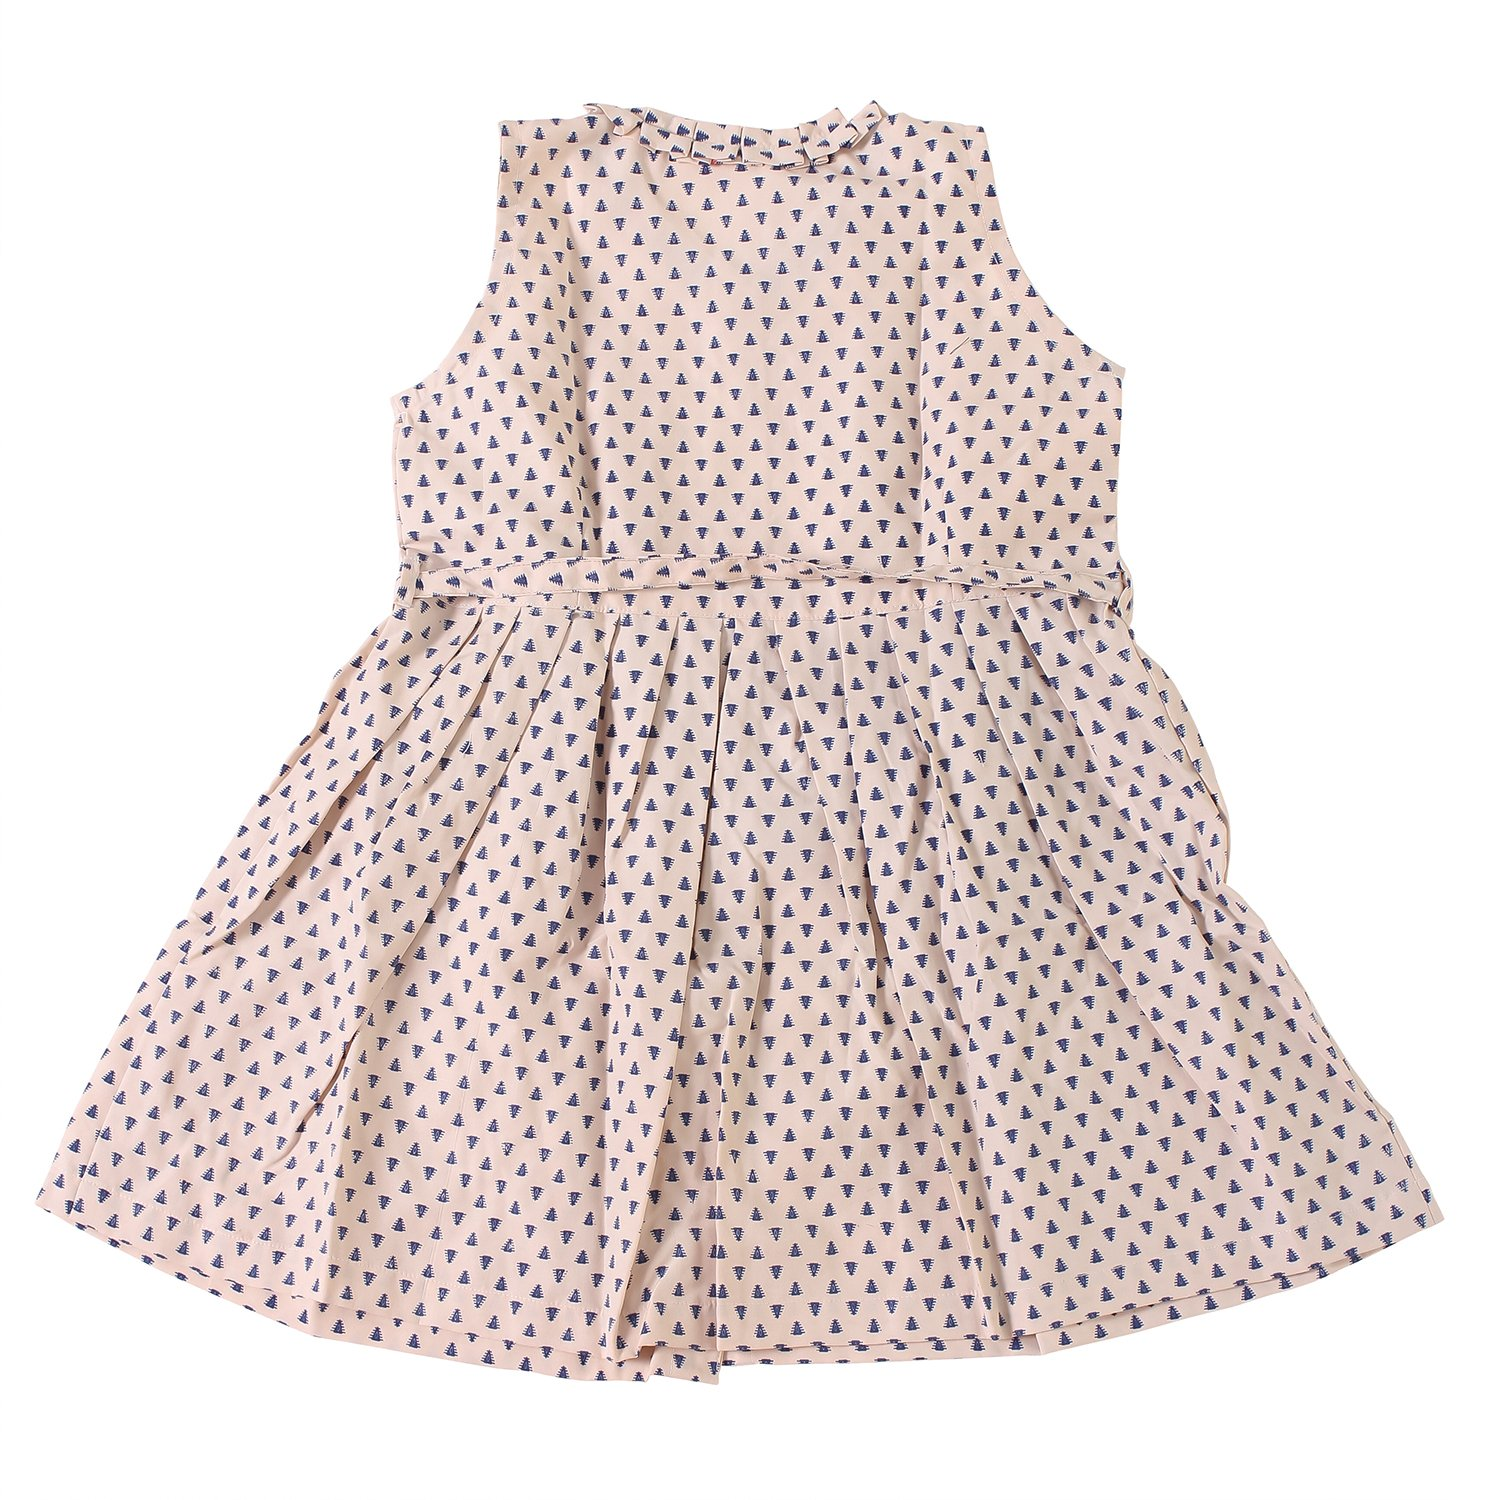 1a31047db959 Twist Girls Kids Solid Cotton Casual Frocks Dresses - Frocks with ...